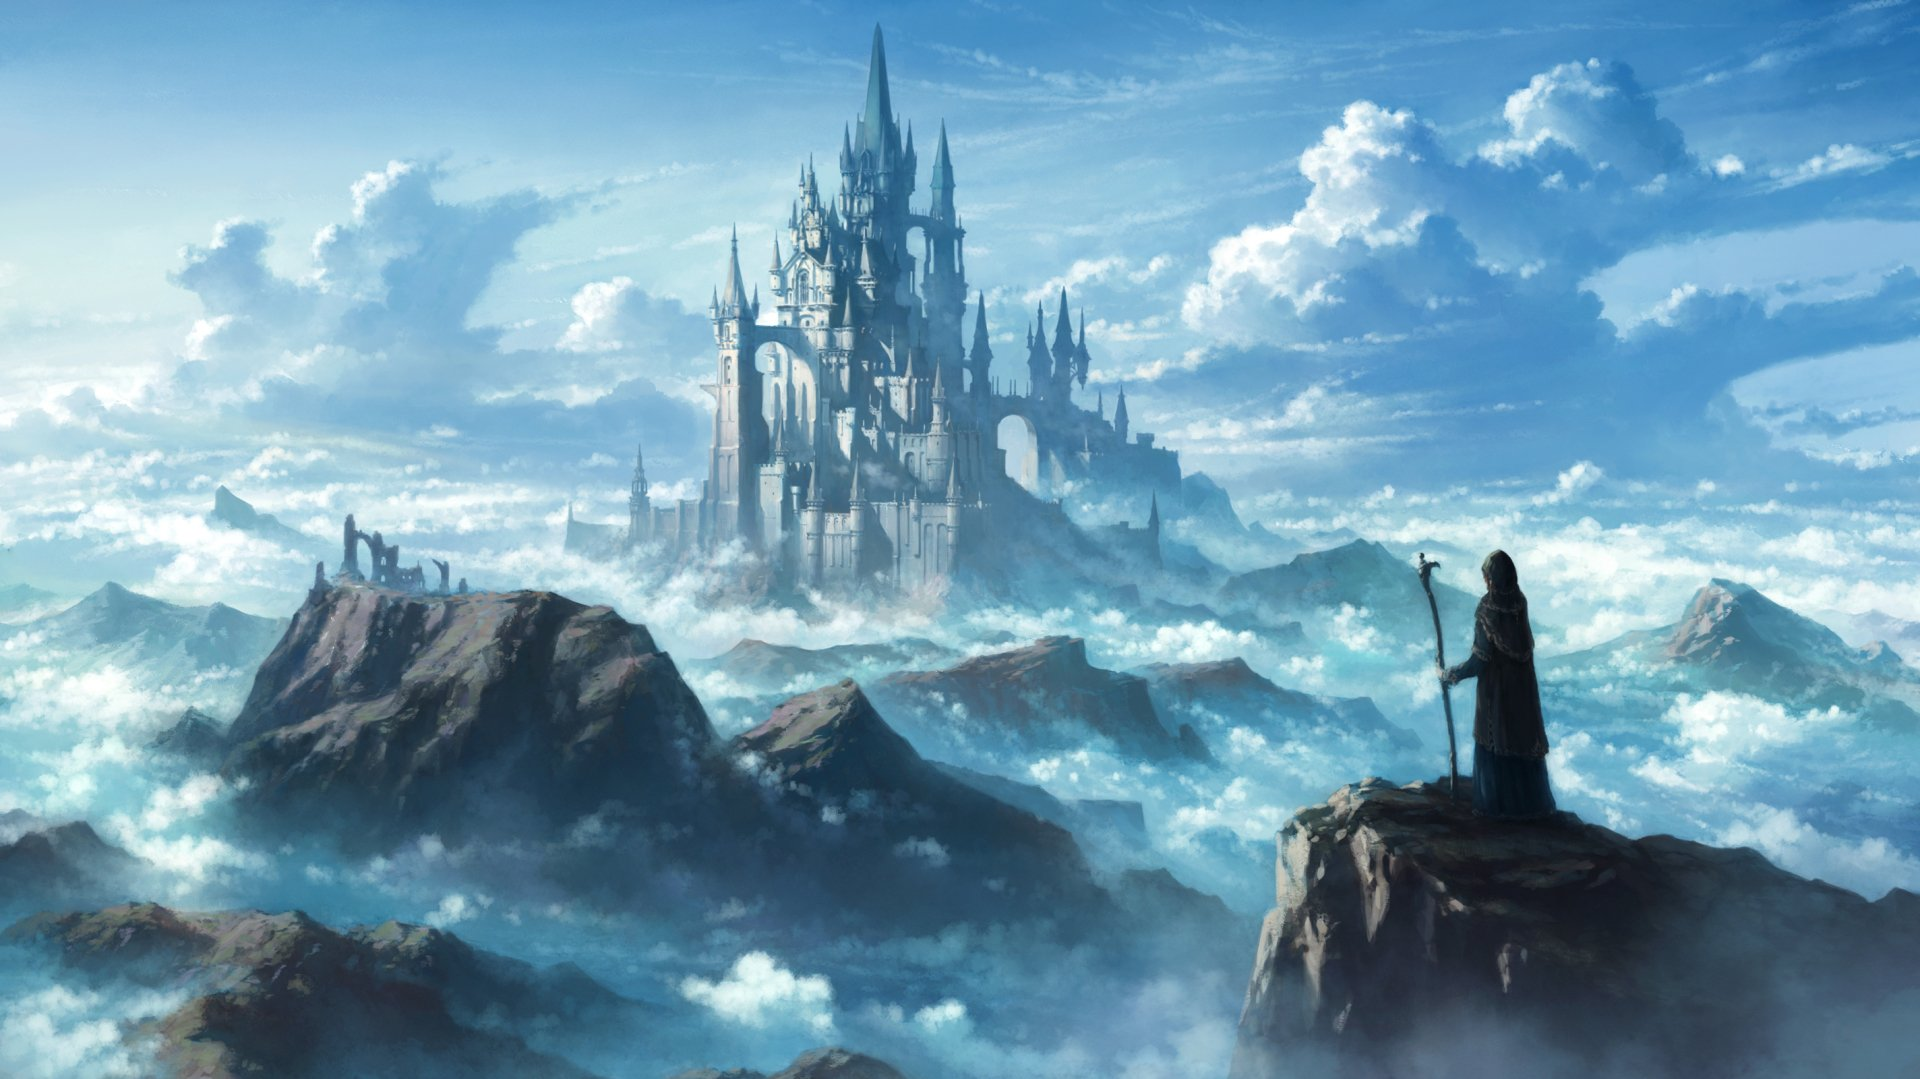 Fantasy - Castle  Man Sky Cloud Mountain Fantasy Wallpaper